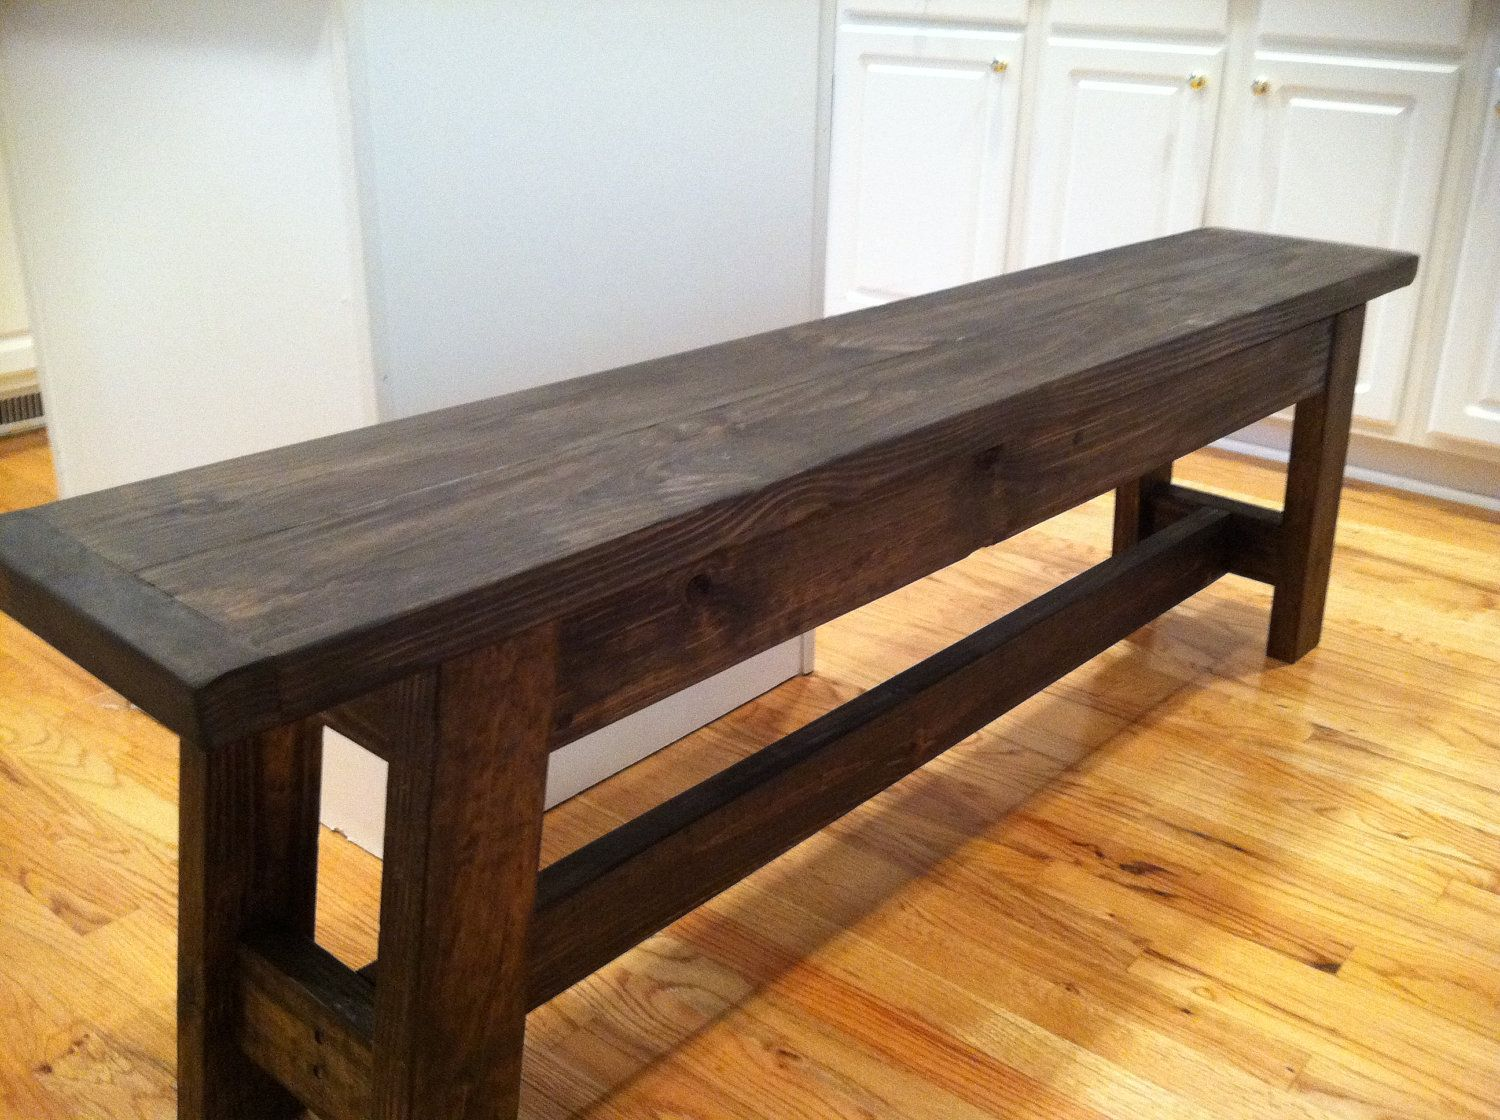 Rustic Wood Farmhouse Bench Farmhouse Furniture Farmhouse Bench